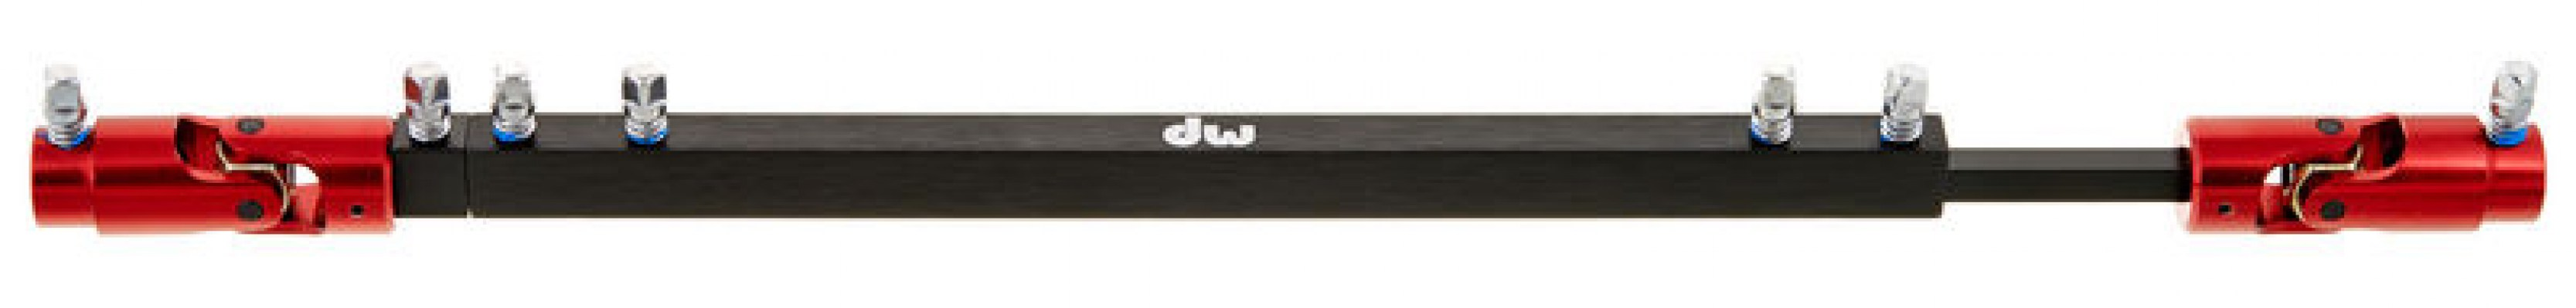 DW SP211 Cardan Shaft